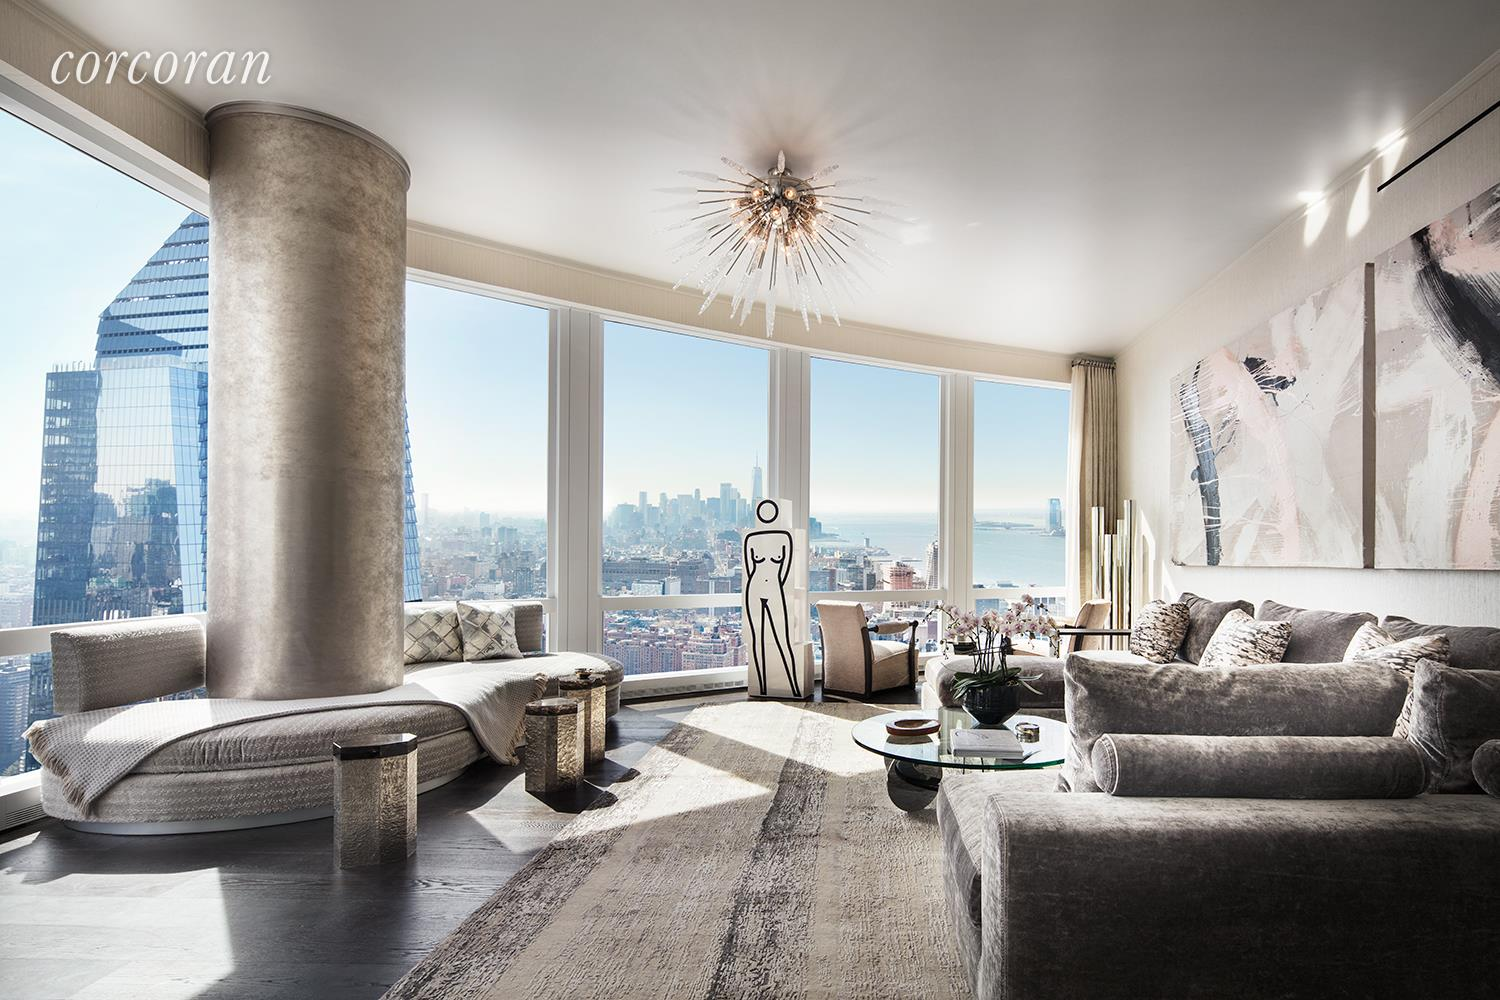 """LIVE WHERE IT ALL COMES TOGETHER  35 Hudson Yards, the tallest residential building at Hudson Yards, was designed by David Childs/SOM featuring a beautiful facade of Bavarian limestone, while the residences- which start on the 53rd floor- feature interiors by AD100 designer Tony Ingrao. Residents will have access to the ultimate lifestyle including services and benefits unique to Hudson Yards. Just an elevator ride away, the building will feature a flagship Equinox Club® with indoor and outdoor swimming pools, SoulCycle ®, Equinox Spa® and the first of its kind Equinox Hotel®. Three on-premises restaurants will offer incredible cuisine and in-residence dining. In addition, residents will have a full suite of private amenities, including a residents-only fitness center, playroom, business center and board rooms, lounge, game room, dining room, and grand terrace with catering services overlooking the Hudson River.  EXPERIENCE SPECTACULAR VIEWS OF THE HUDSON RIVER FROM THIS GENEROUS CORNER THREE BEDROOM HOME. This expertly planned split three bedroom residence boasts 10'10"""" ceilings, lavish satin finish wide plank French oak floors, and stunning views of the Hudson River from the corner Great Room. The windowed eat-in kitchen has been outfitted with luxurious Smallbone of Devizes cabinetry with opal white marble counters and backsplash. Full suite of Gaggenau appliances, inclusive of a wine fridge and coffee maker, truly make this kitchen extraordinary. The master bedroom boasts two large walk-in closets and a luxurious windowed master bathroom which is wrapped in stunning iceberg quartzite, complete with stunning double vanity with Kinon panels, and full depth soaking tub. The second and third bedrooms are both equipped with en-suite baths. The utility room with side-by-side Washer/Dryer, and handsome onyx- clad Powder Room, are both conveniently located off the main hallway. No detail was overlooked in this truly exquisite home.  Located on a very special site ringed"""